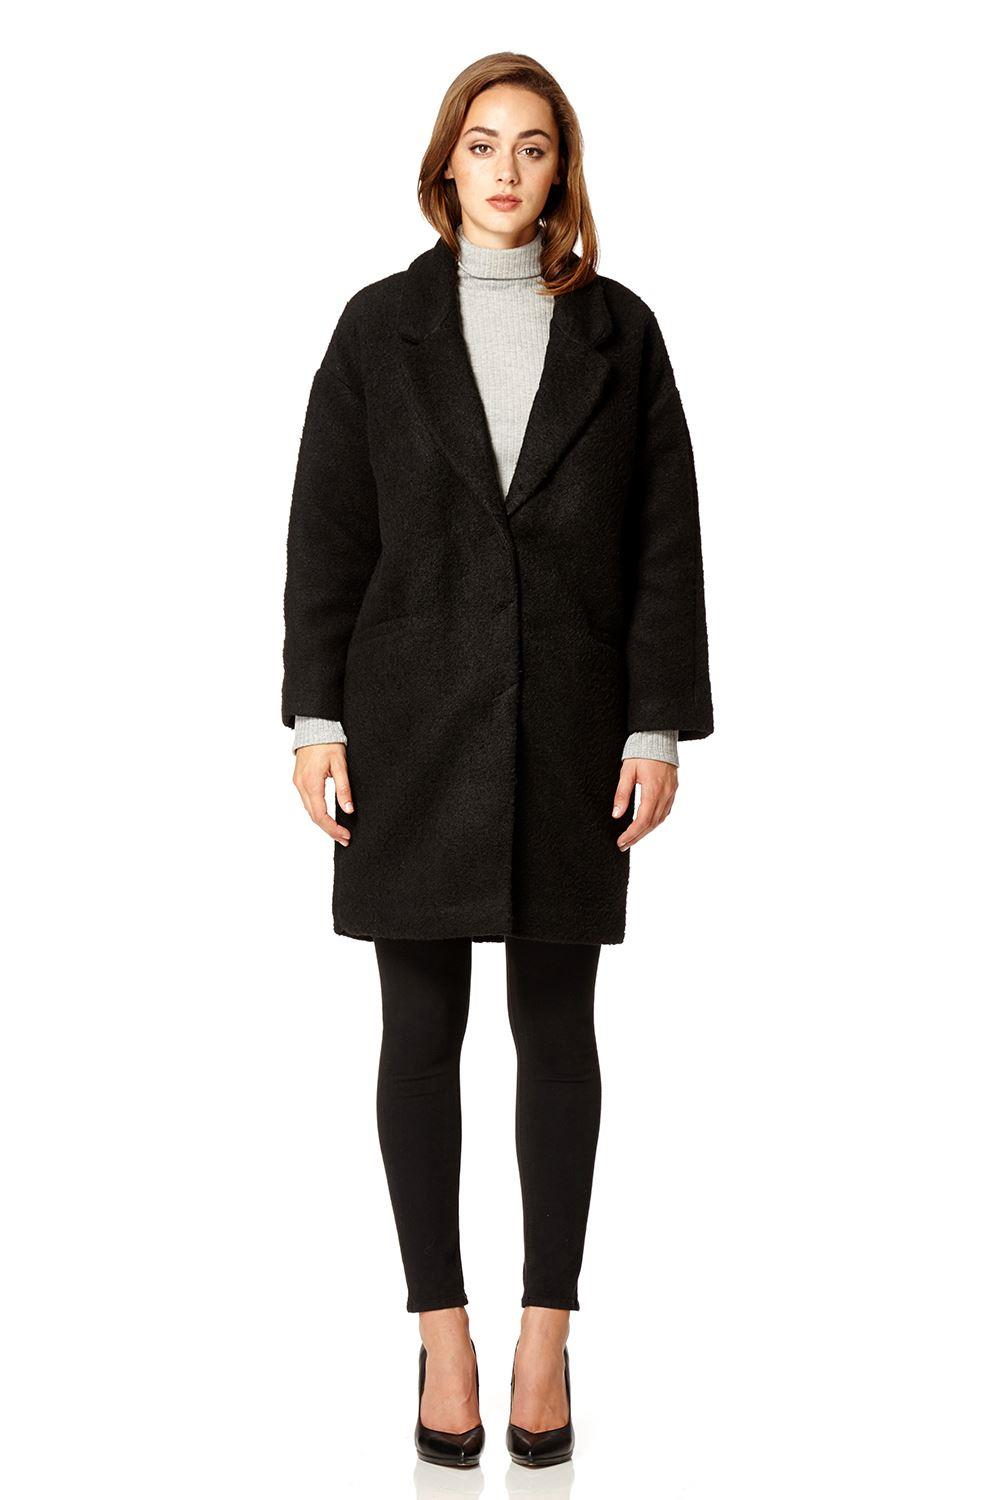 Spice - Womens Faux Mohair Oversized Winter Coat